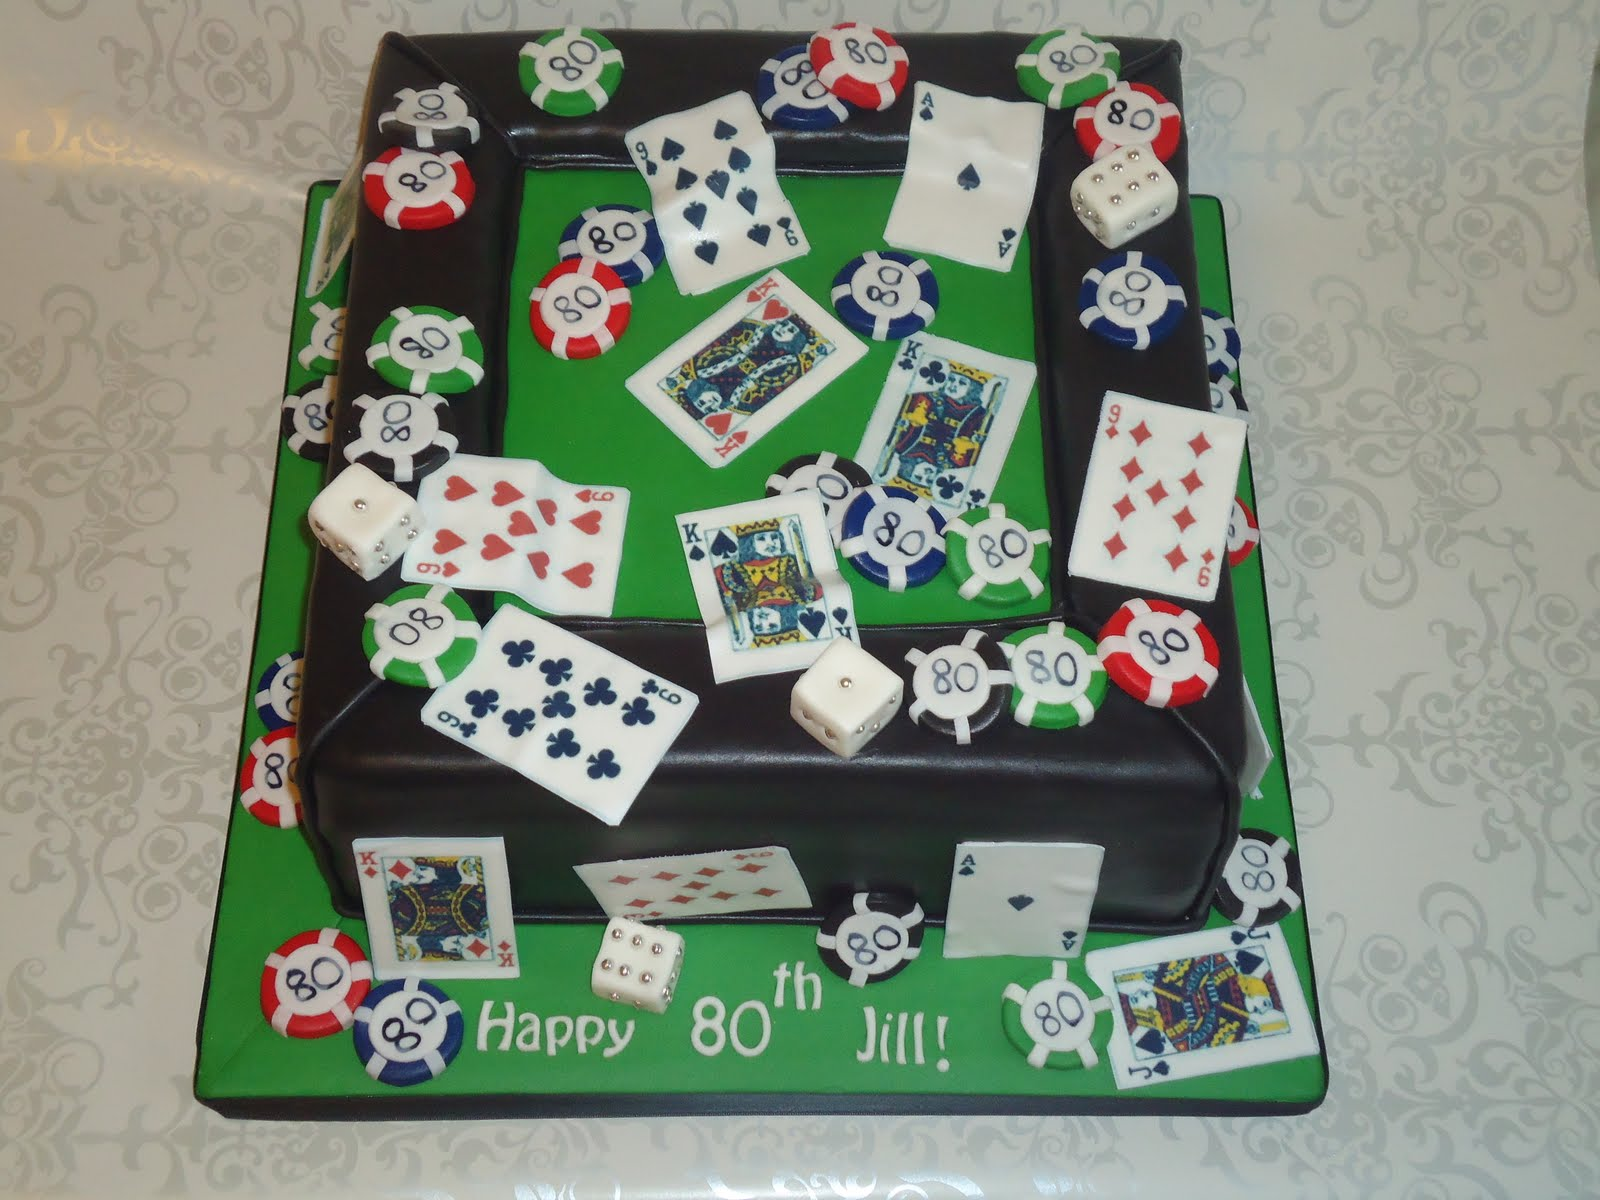 poker-cards-casino-theme-cakes-cupcakes-mumbai-8